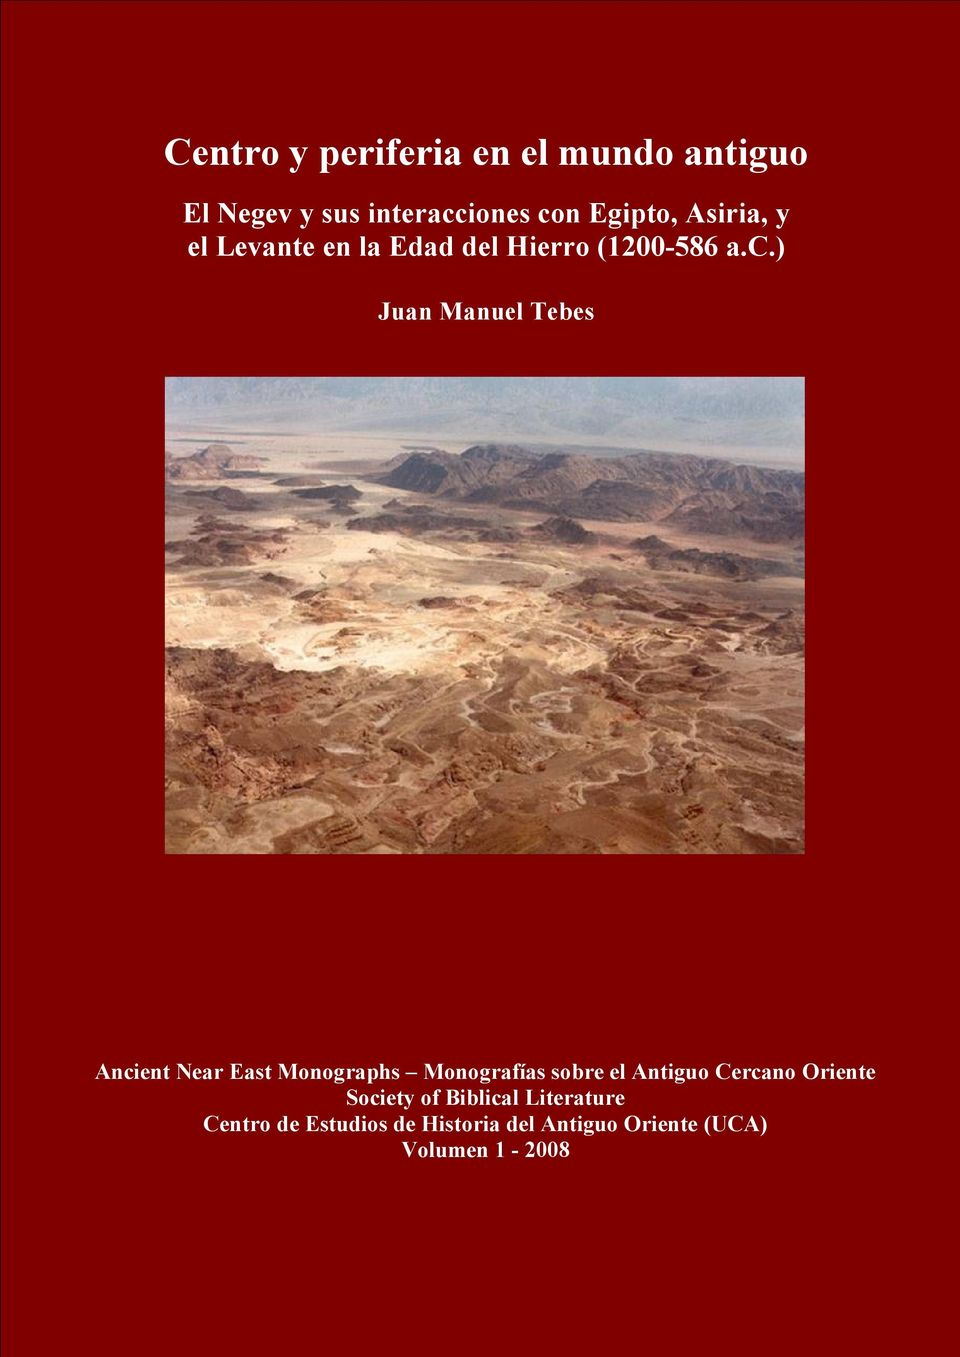 ) Juan Manuel Tebes Ancient Near East Monographs Monografías sobre el Antiguo